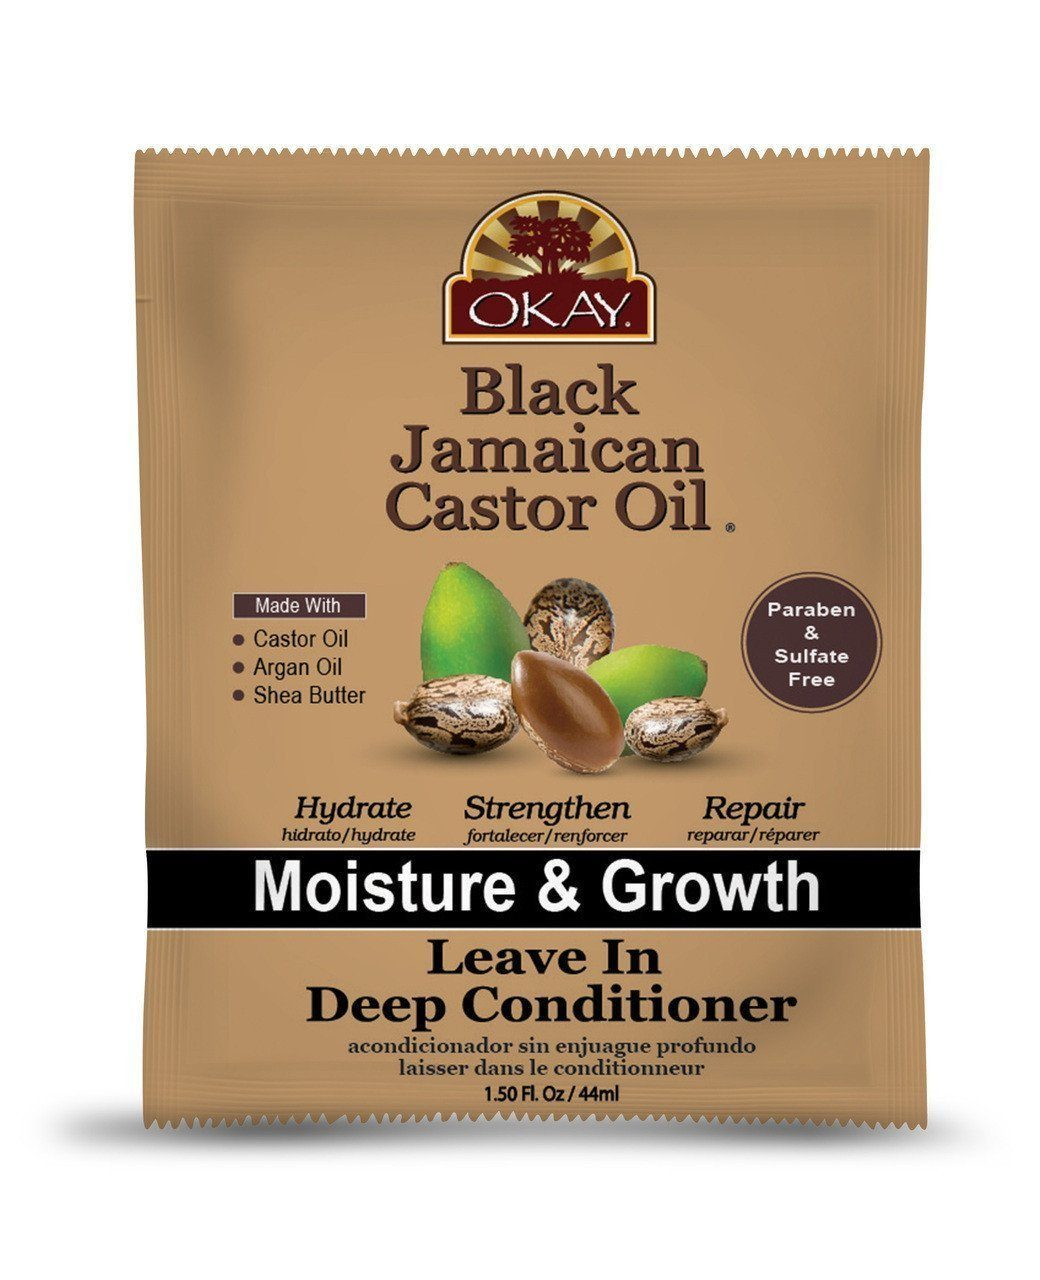 Okay Black Jamaican Castor Oil Leave In Conditioner, 1.5oz